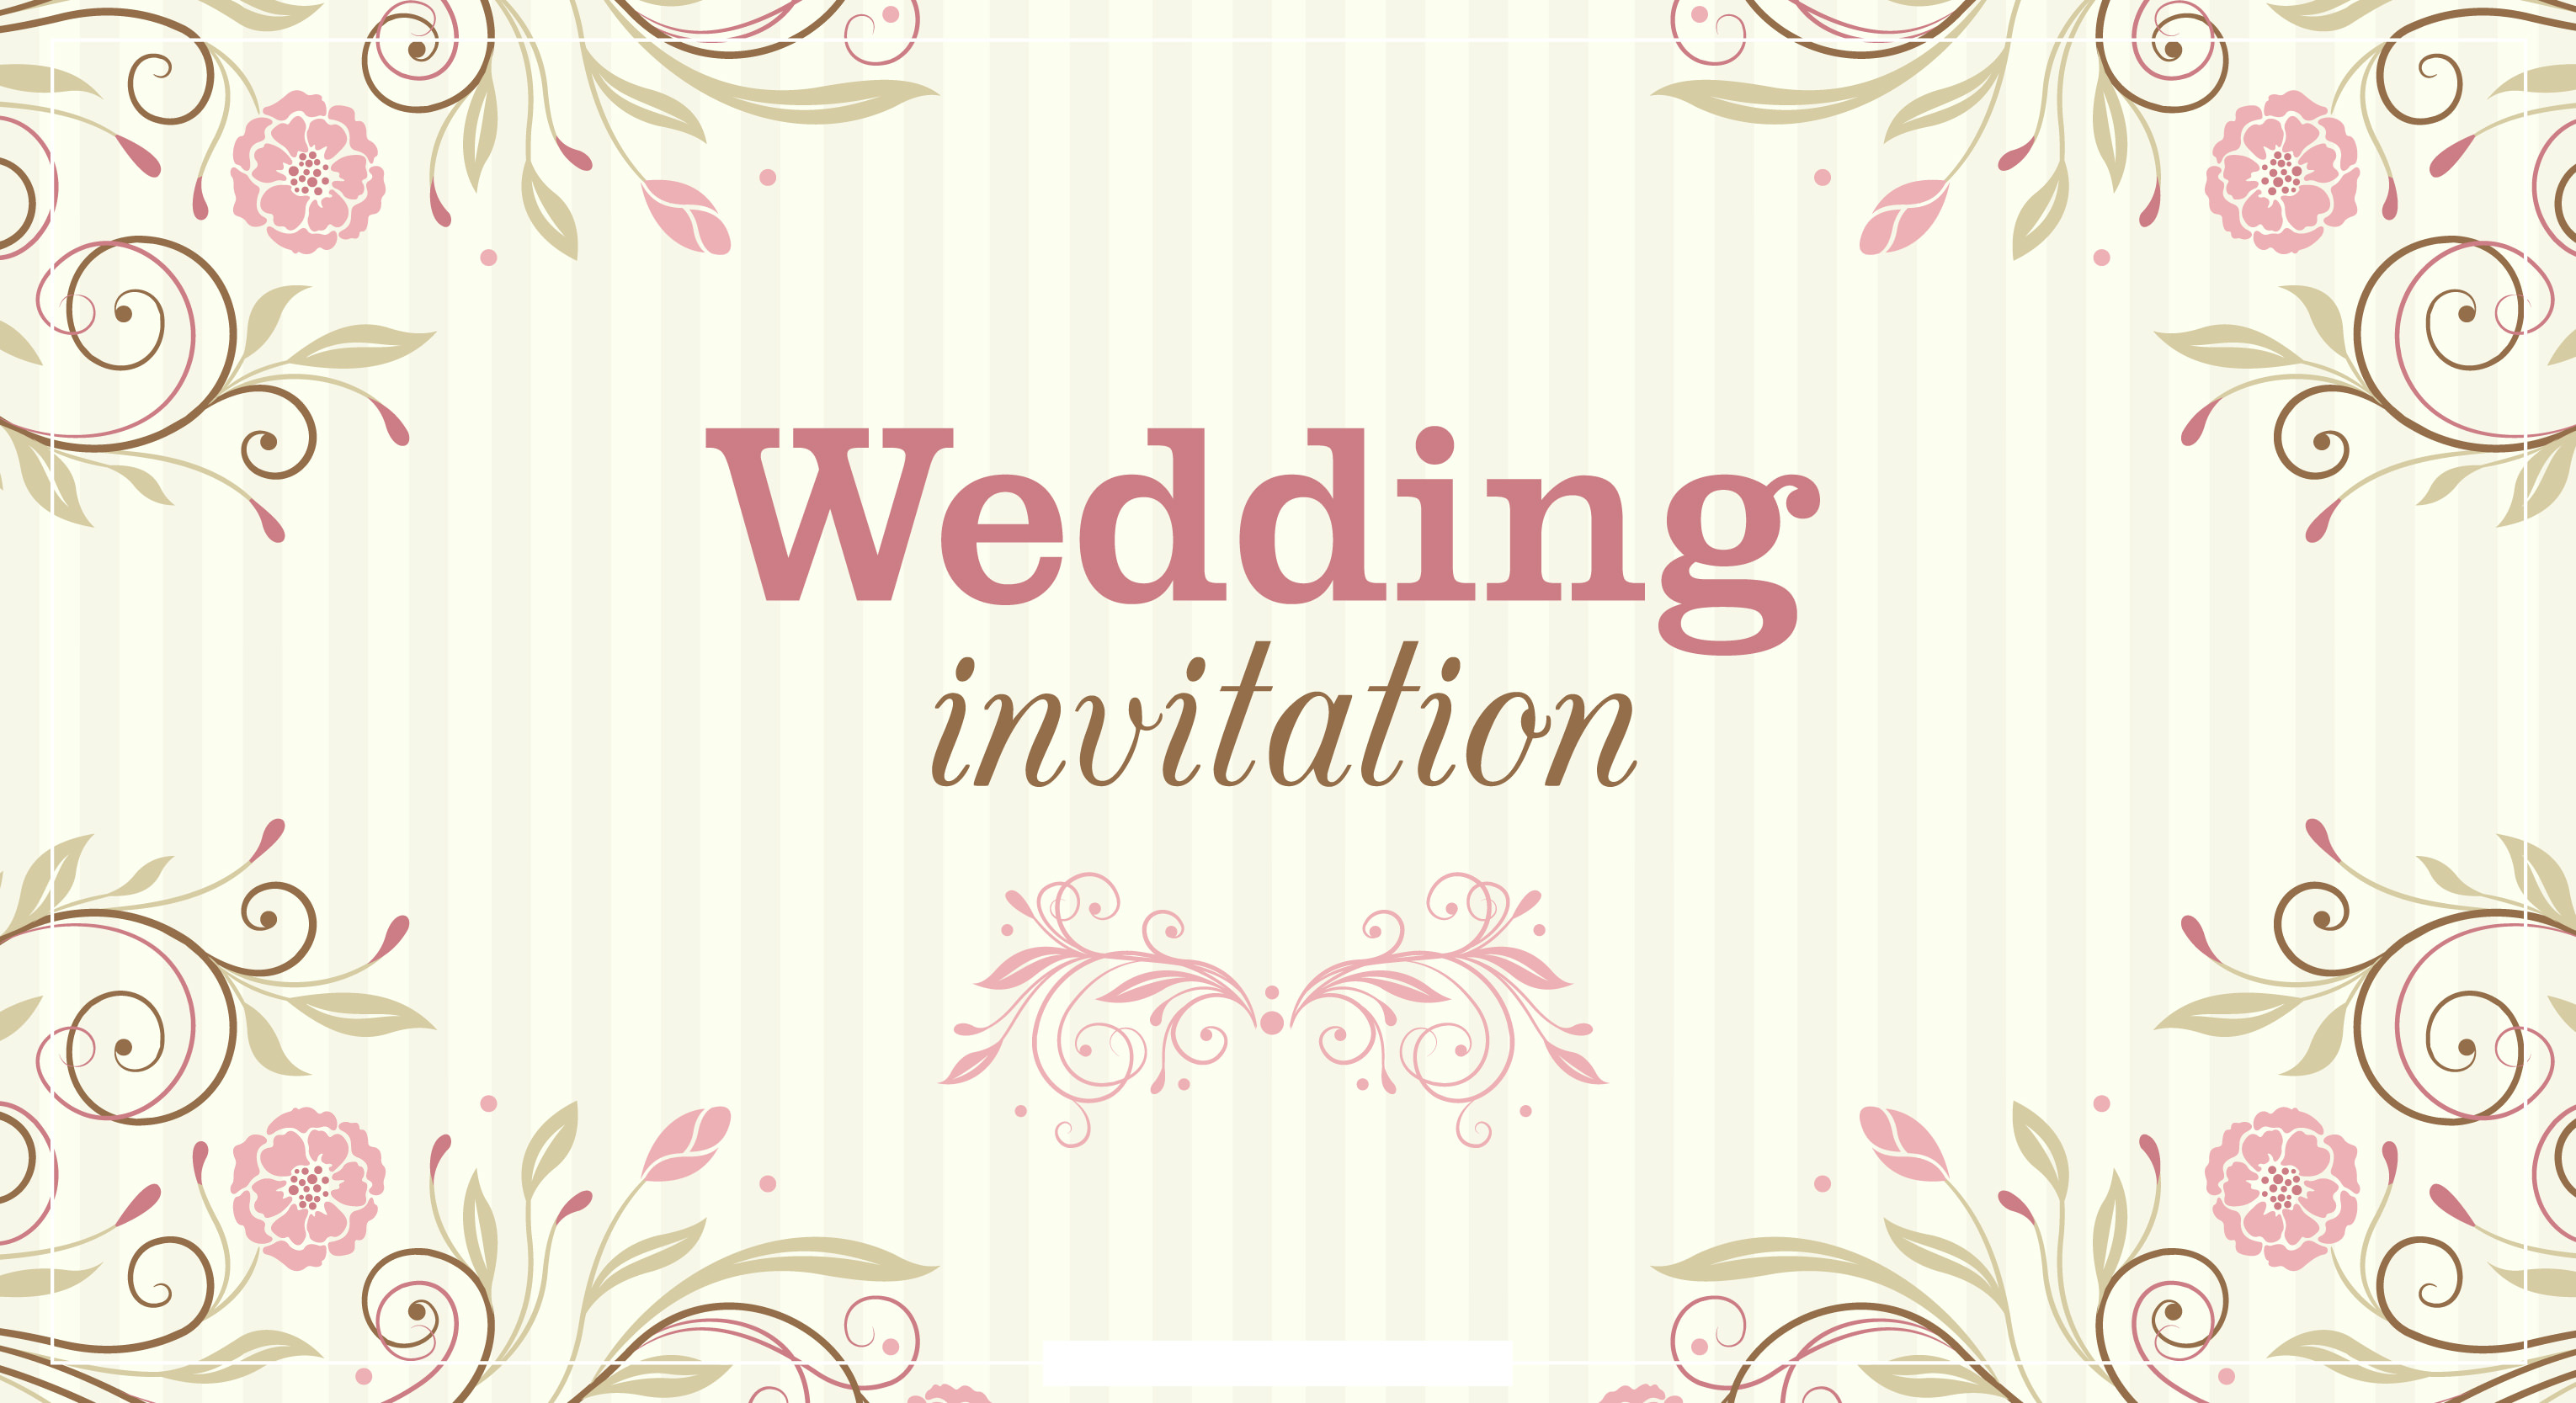 wedding card backgrounds posted by ethan sellers wedding card backgrounds posted by